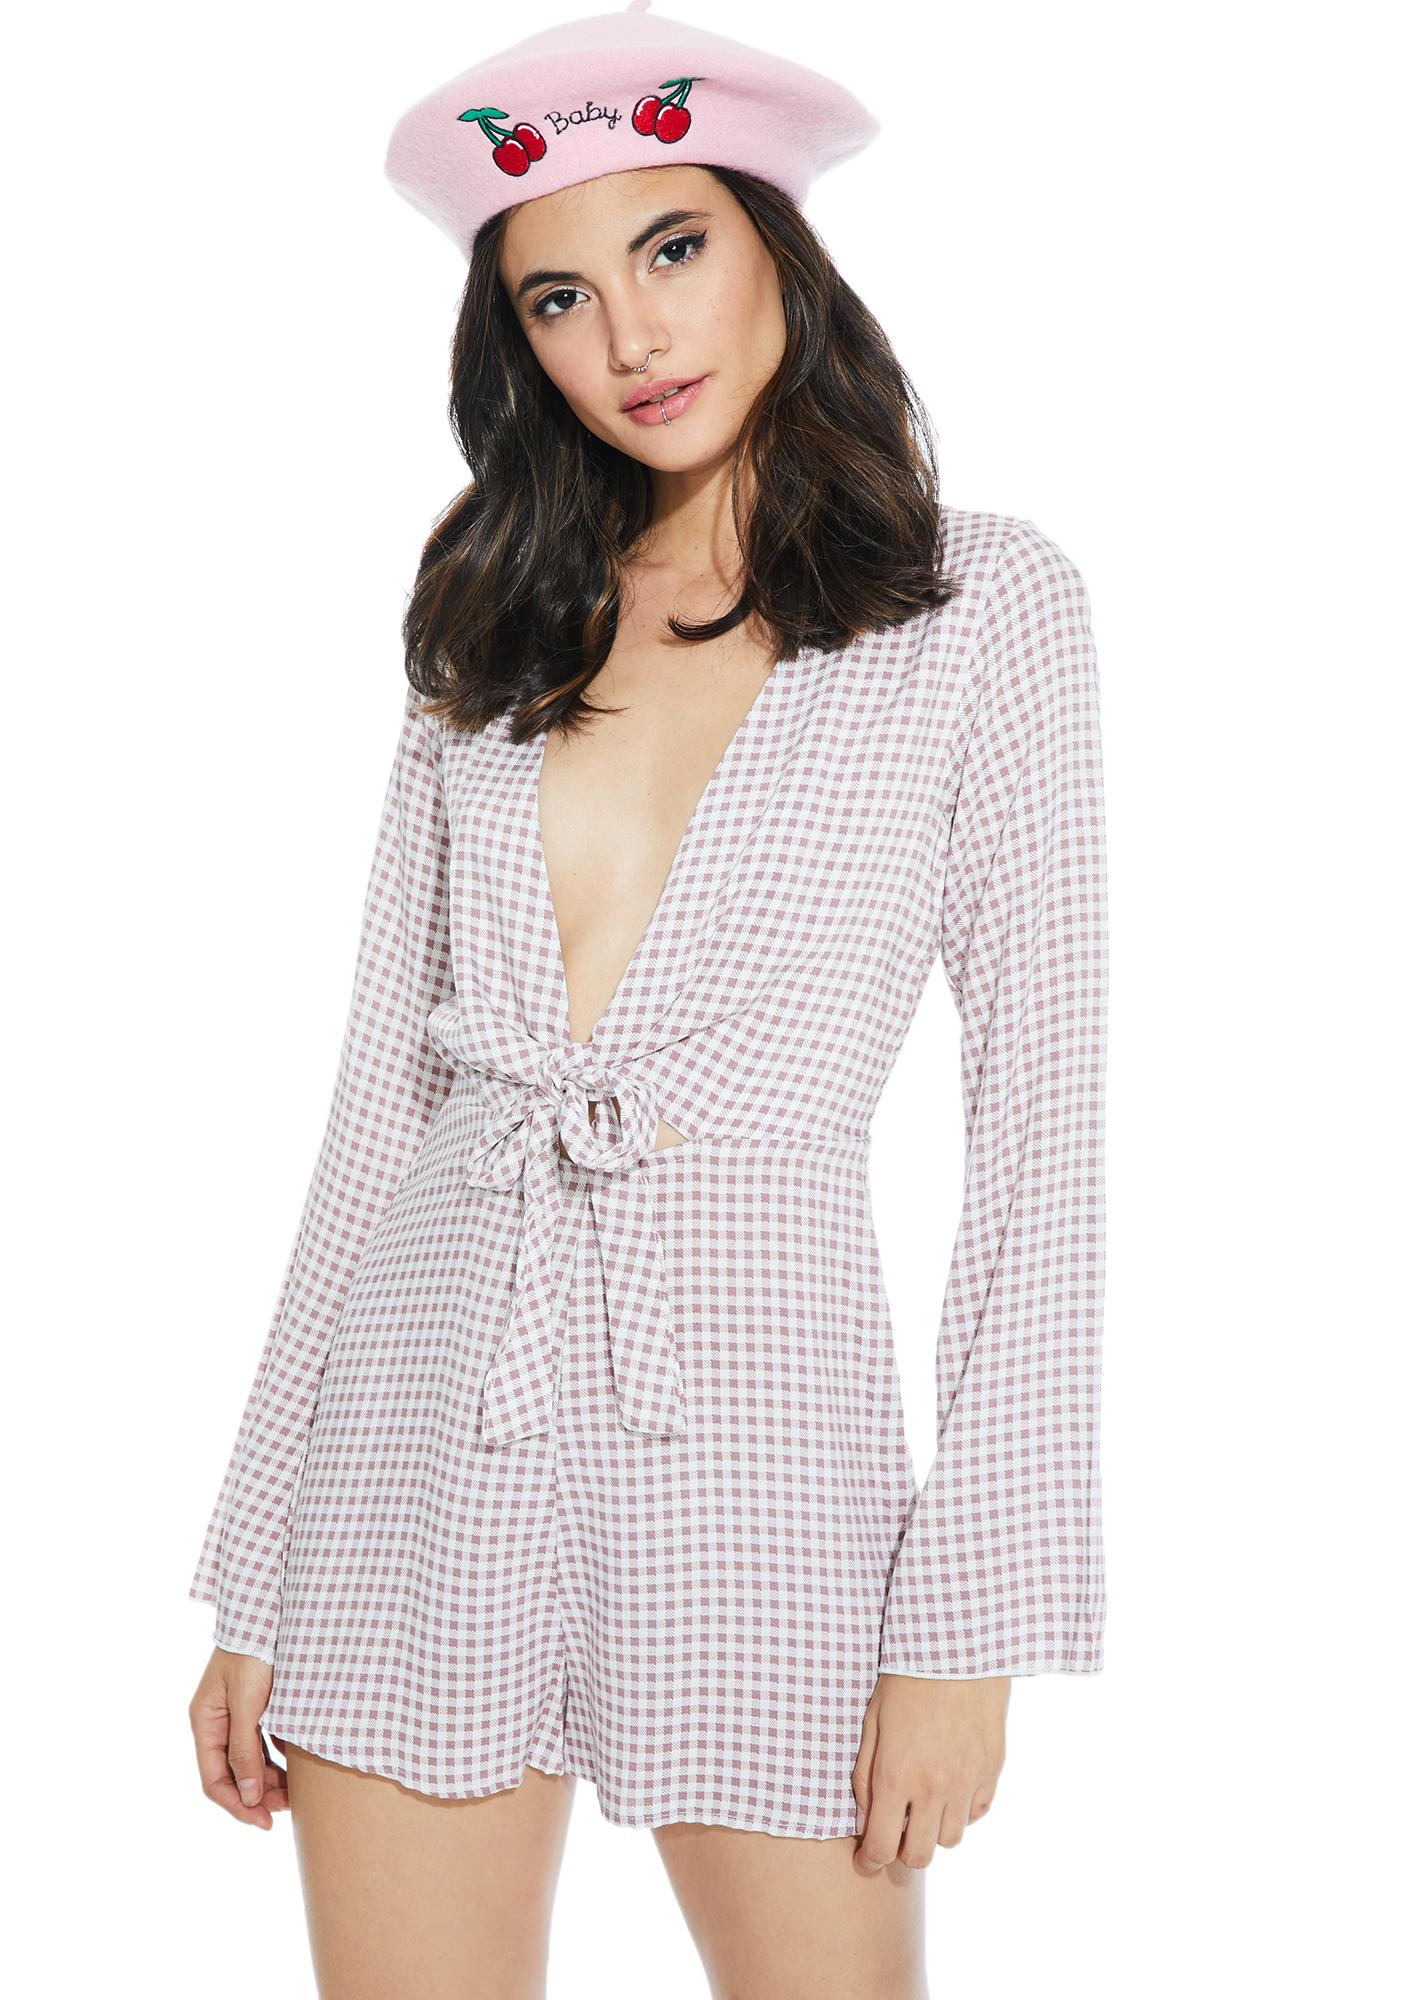 Sweetie Pie Gingham Romper